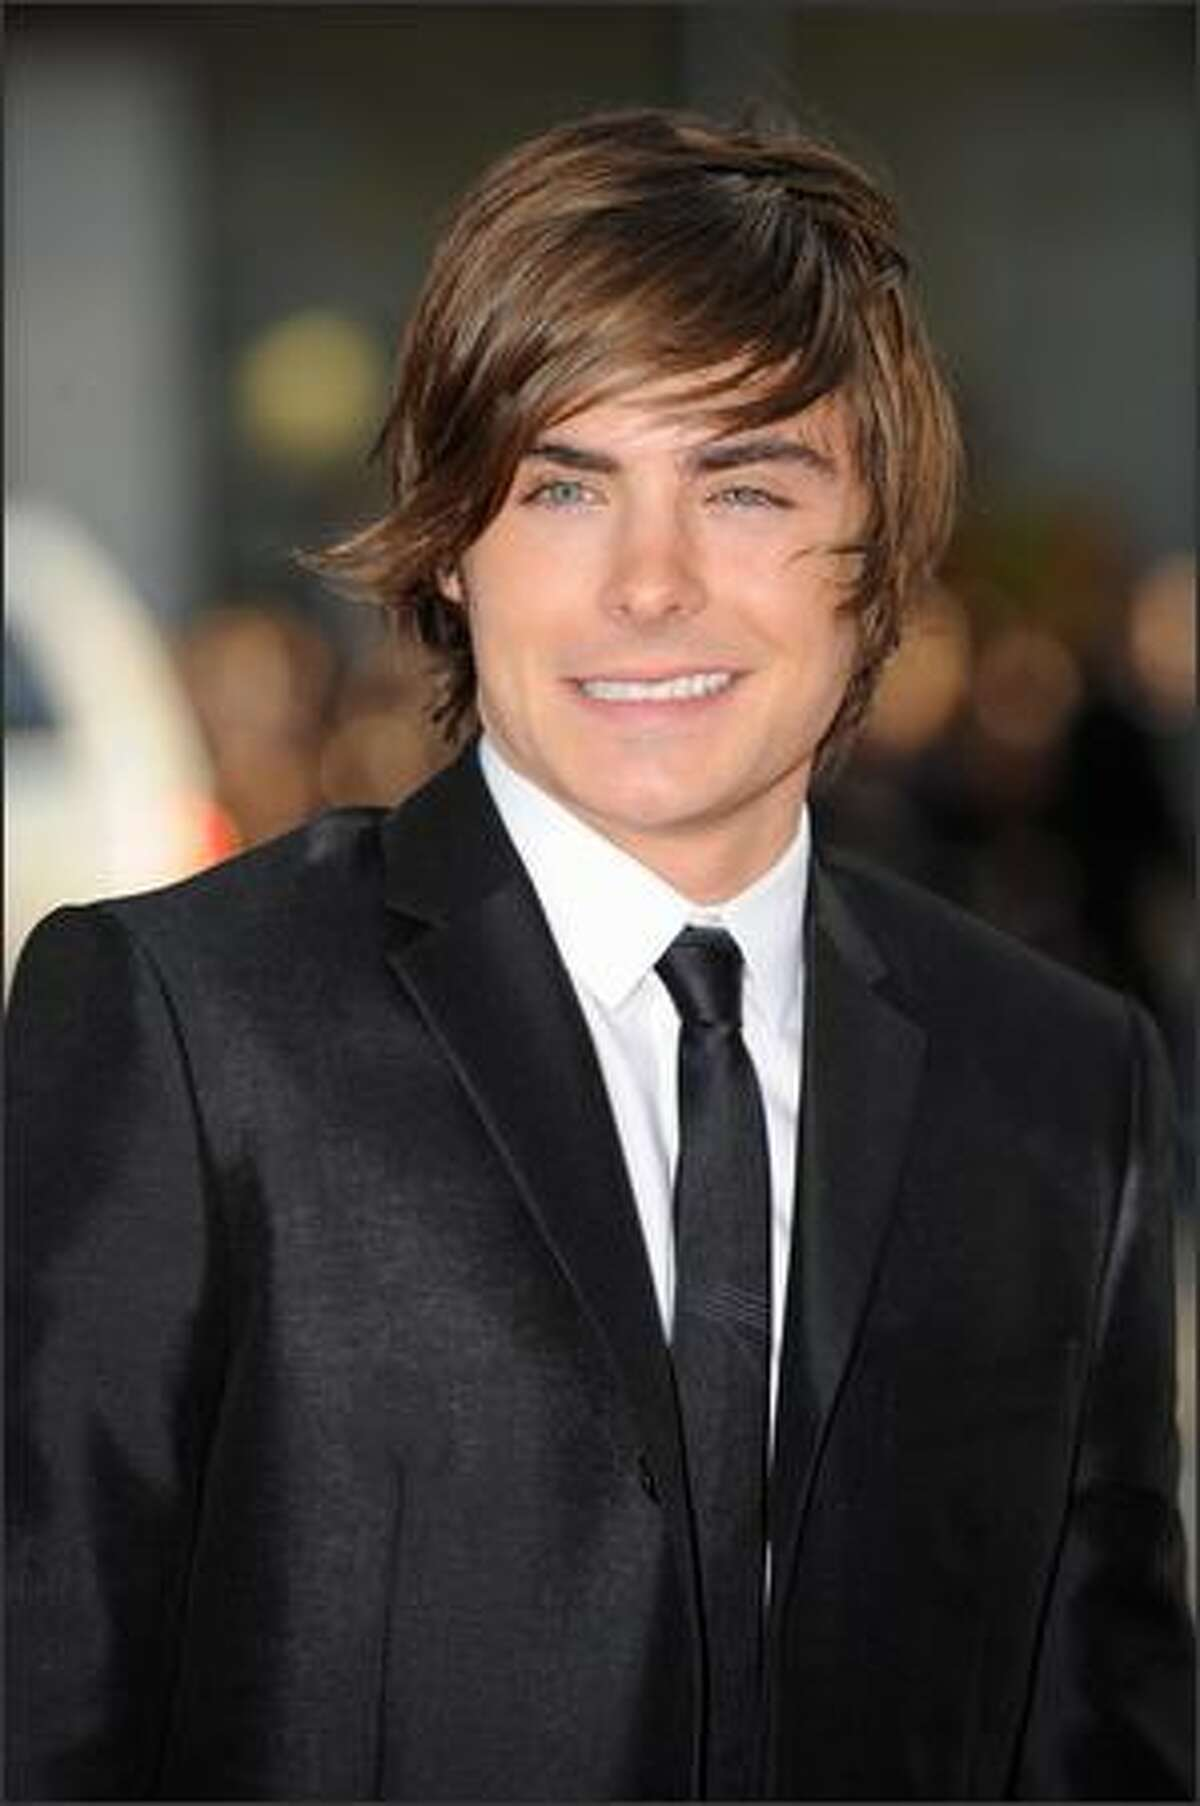 Actor Zac Efron arrives at the Los Angeles premiere of